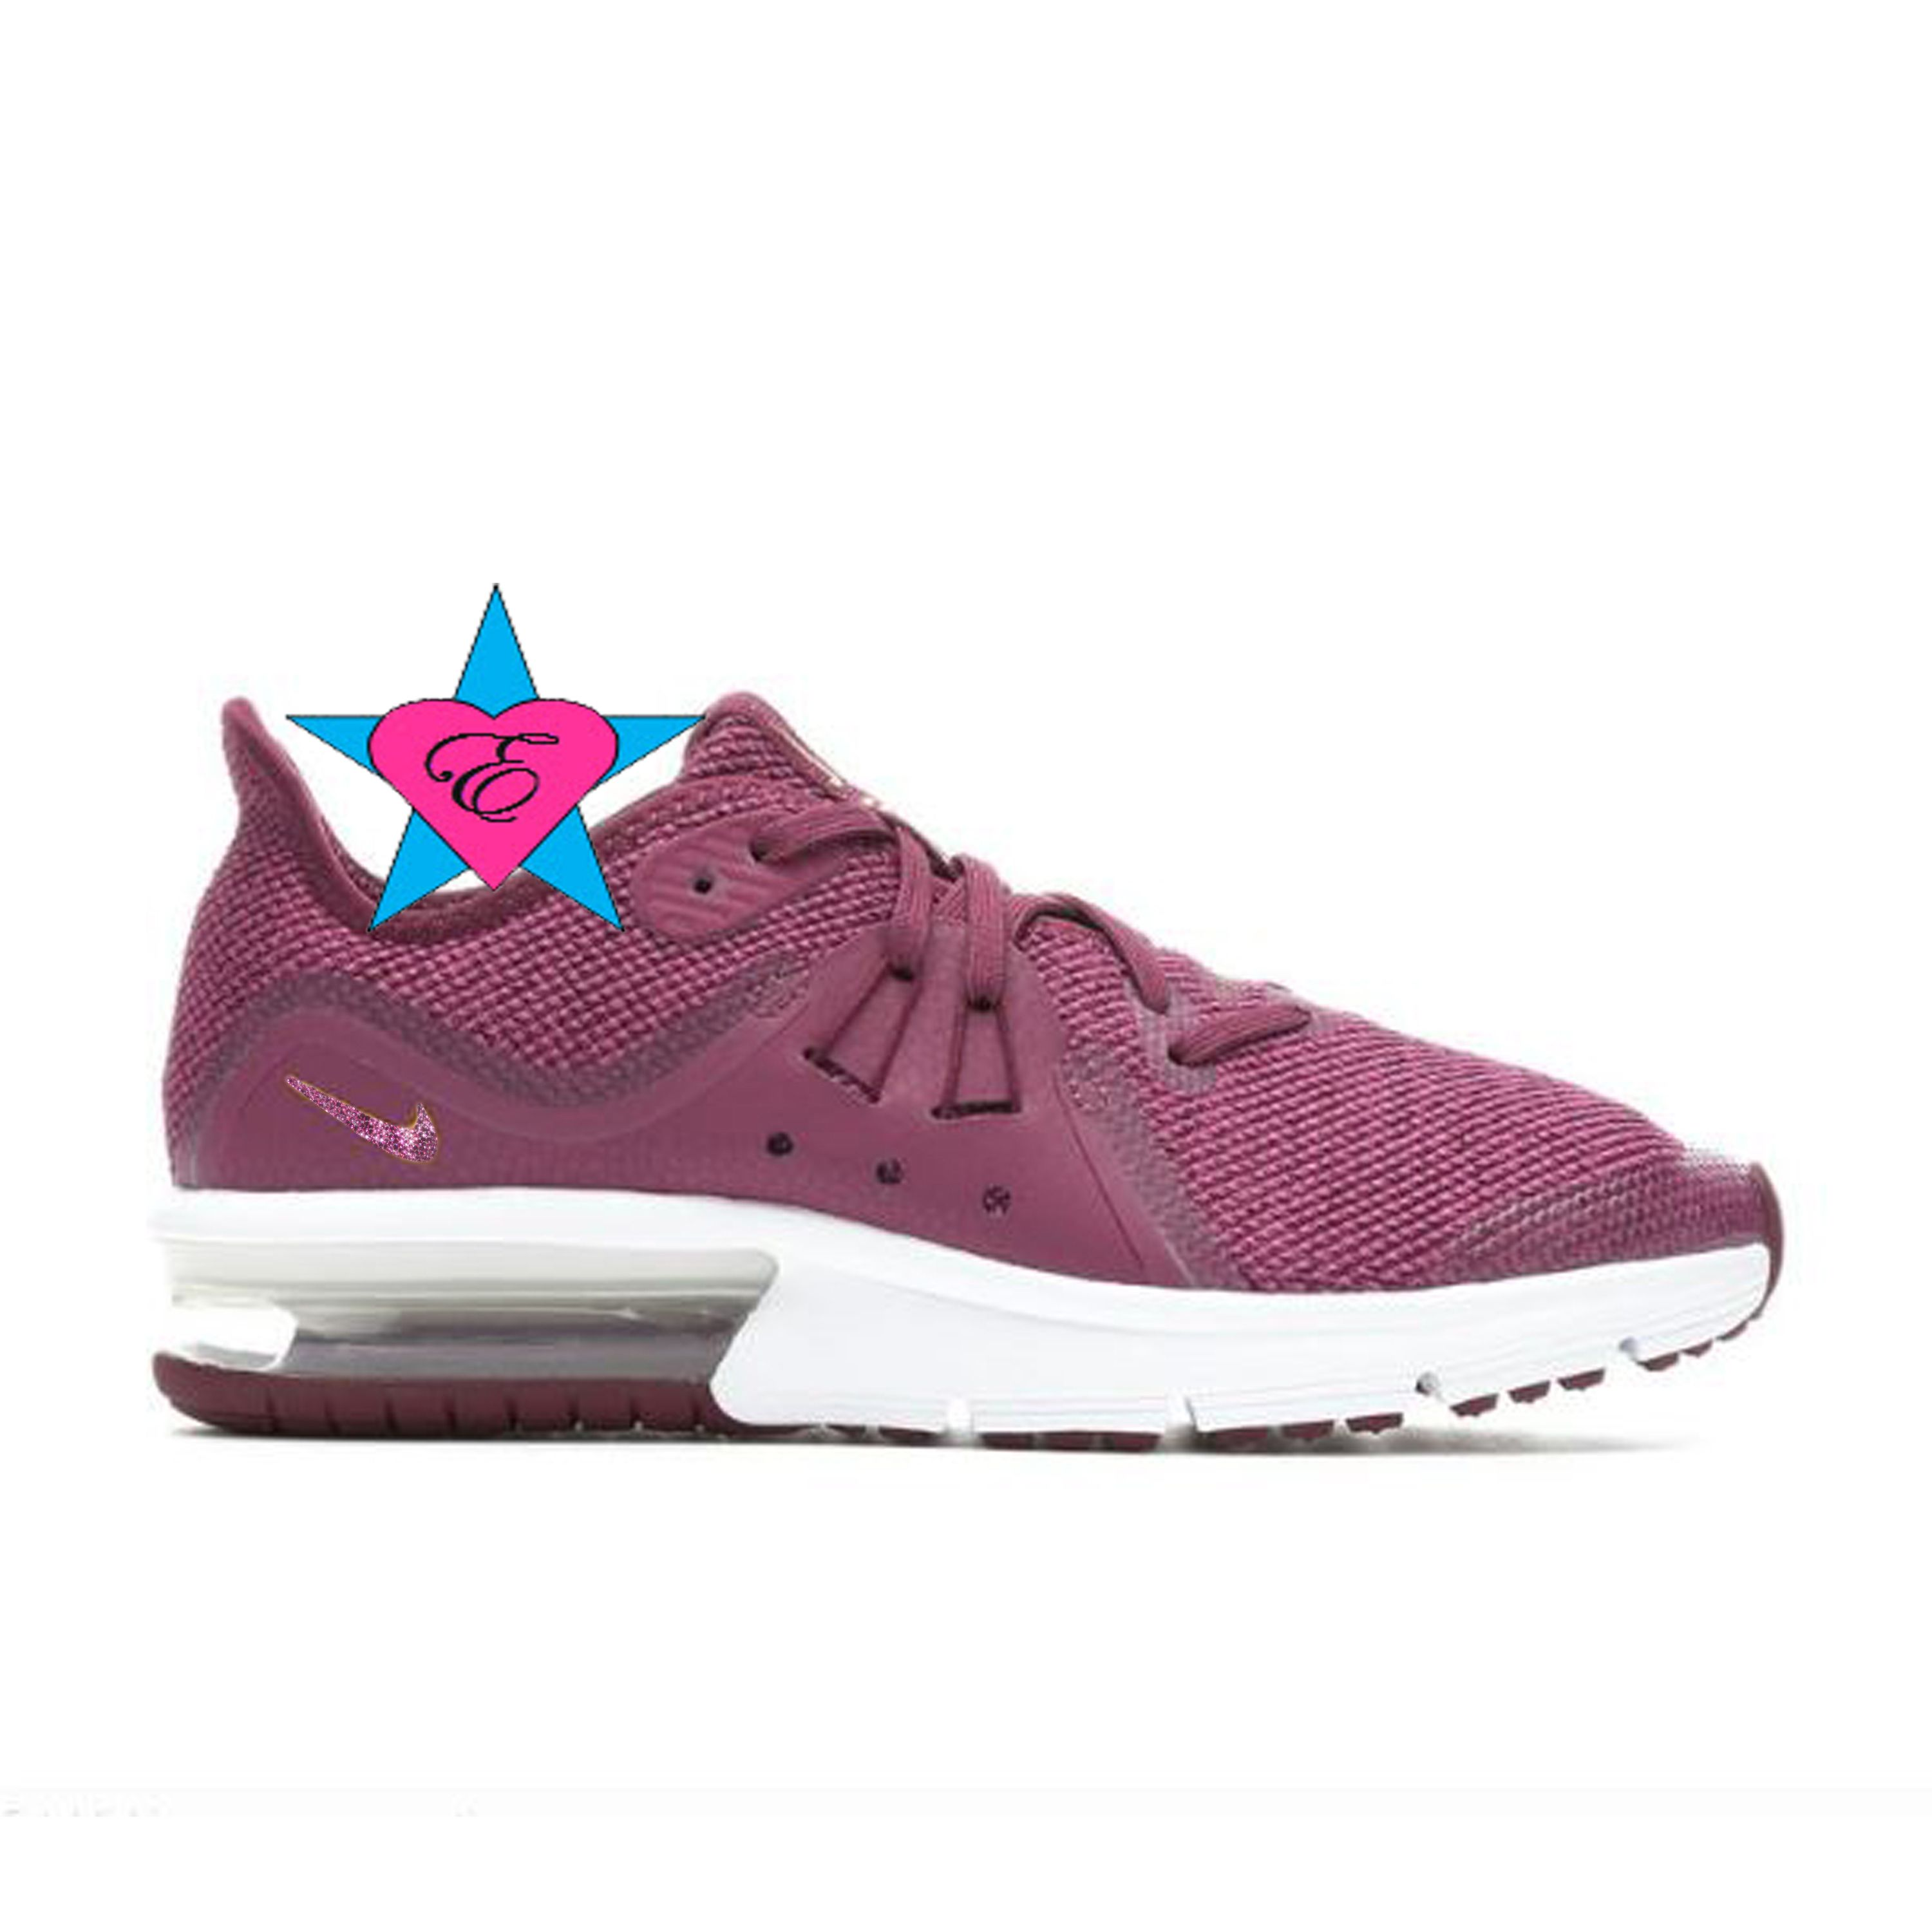 ... arrives a30aa 579ce Bling Shoes for Girls Bedazzled Burgundy N I K E  Air Max Sequent 3 3.5- ... e3acdcd936a6